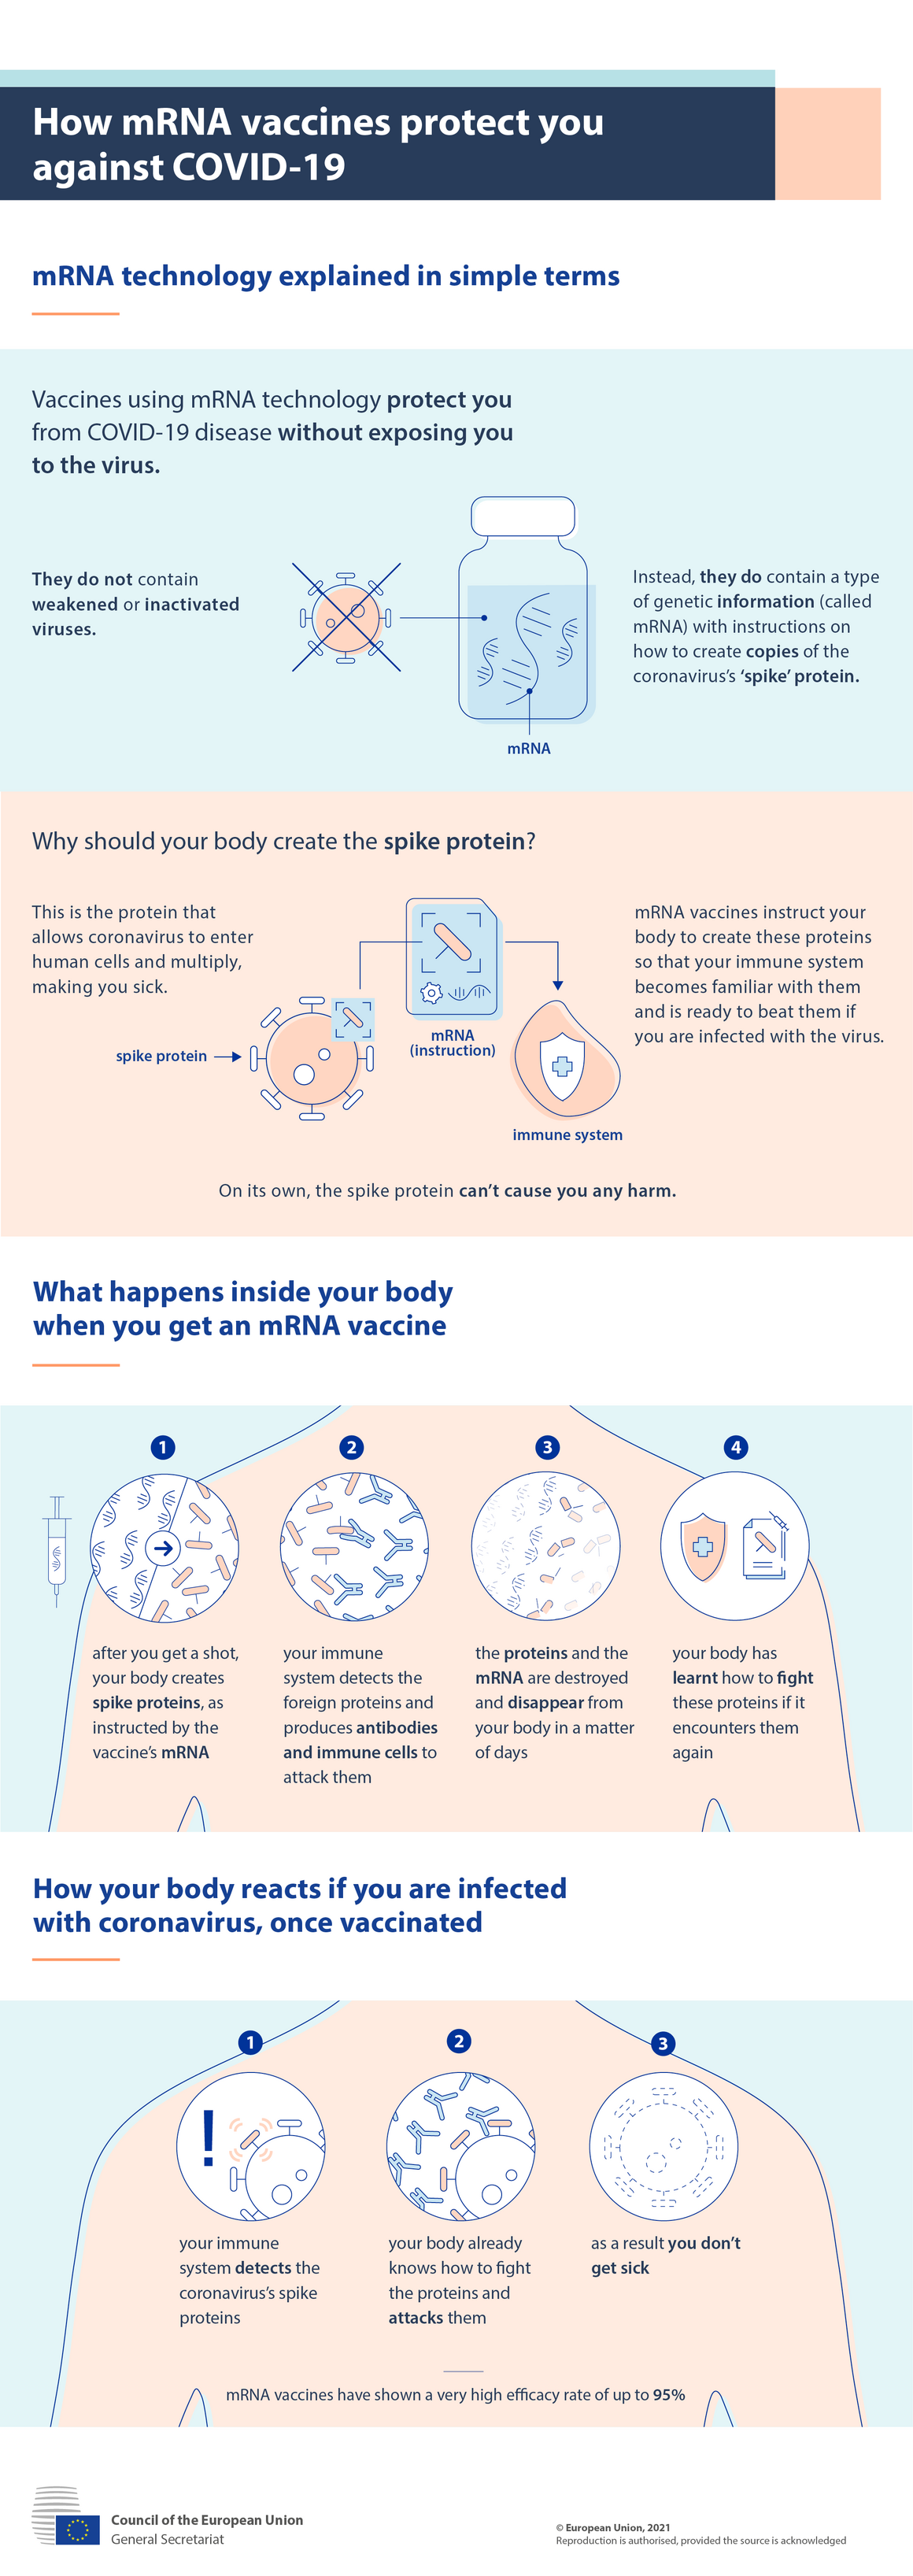 Infographic: How mRNA vaccines protect you against COVID-19